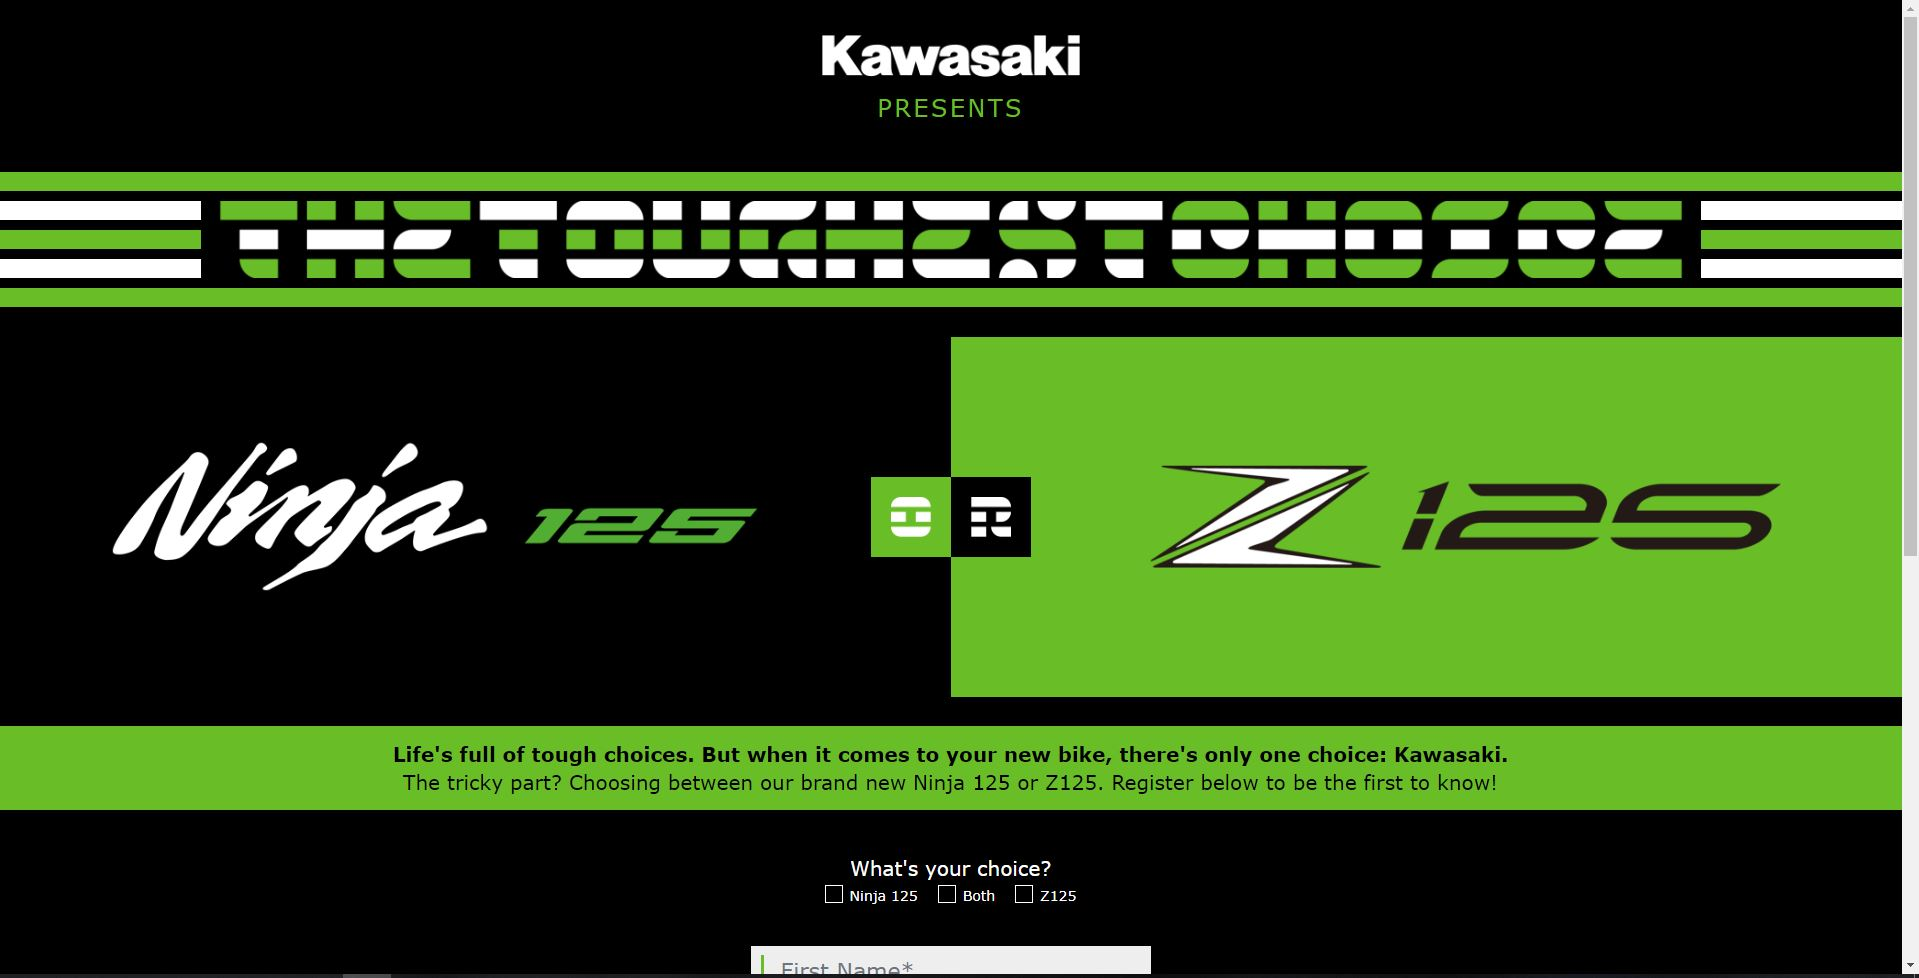 Kawasaki The Toughes Choice Ninja 125 VS Z125